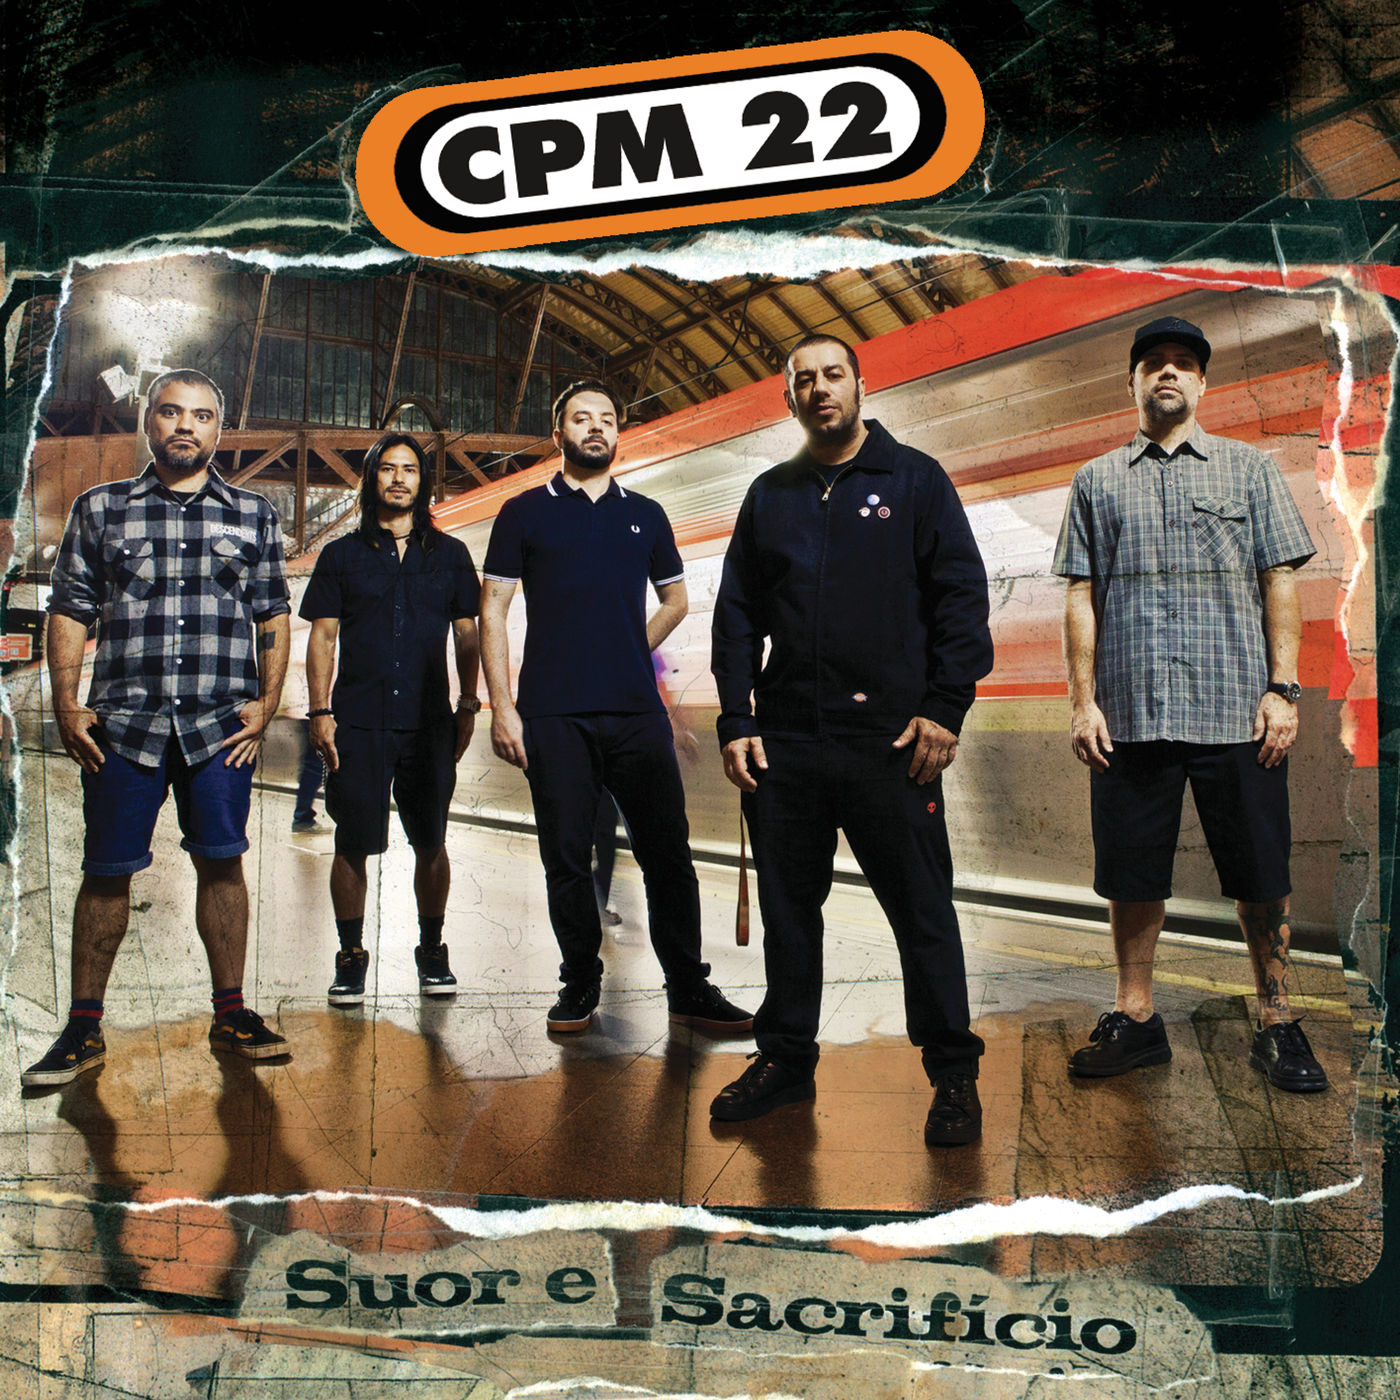 CPM 22, Dance of Days e Rocca